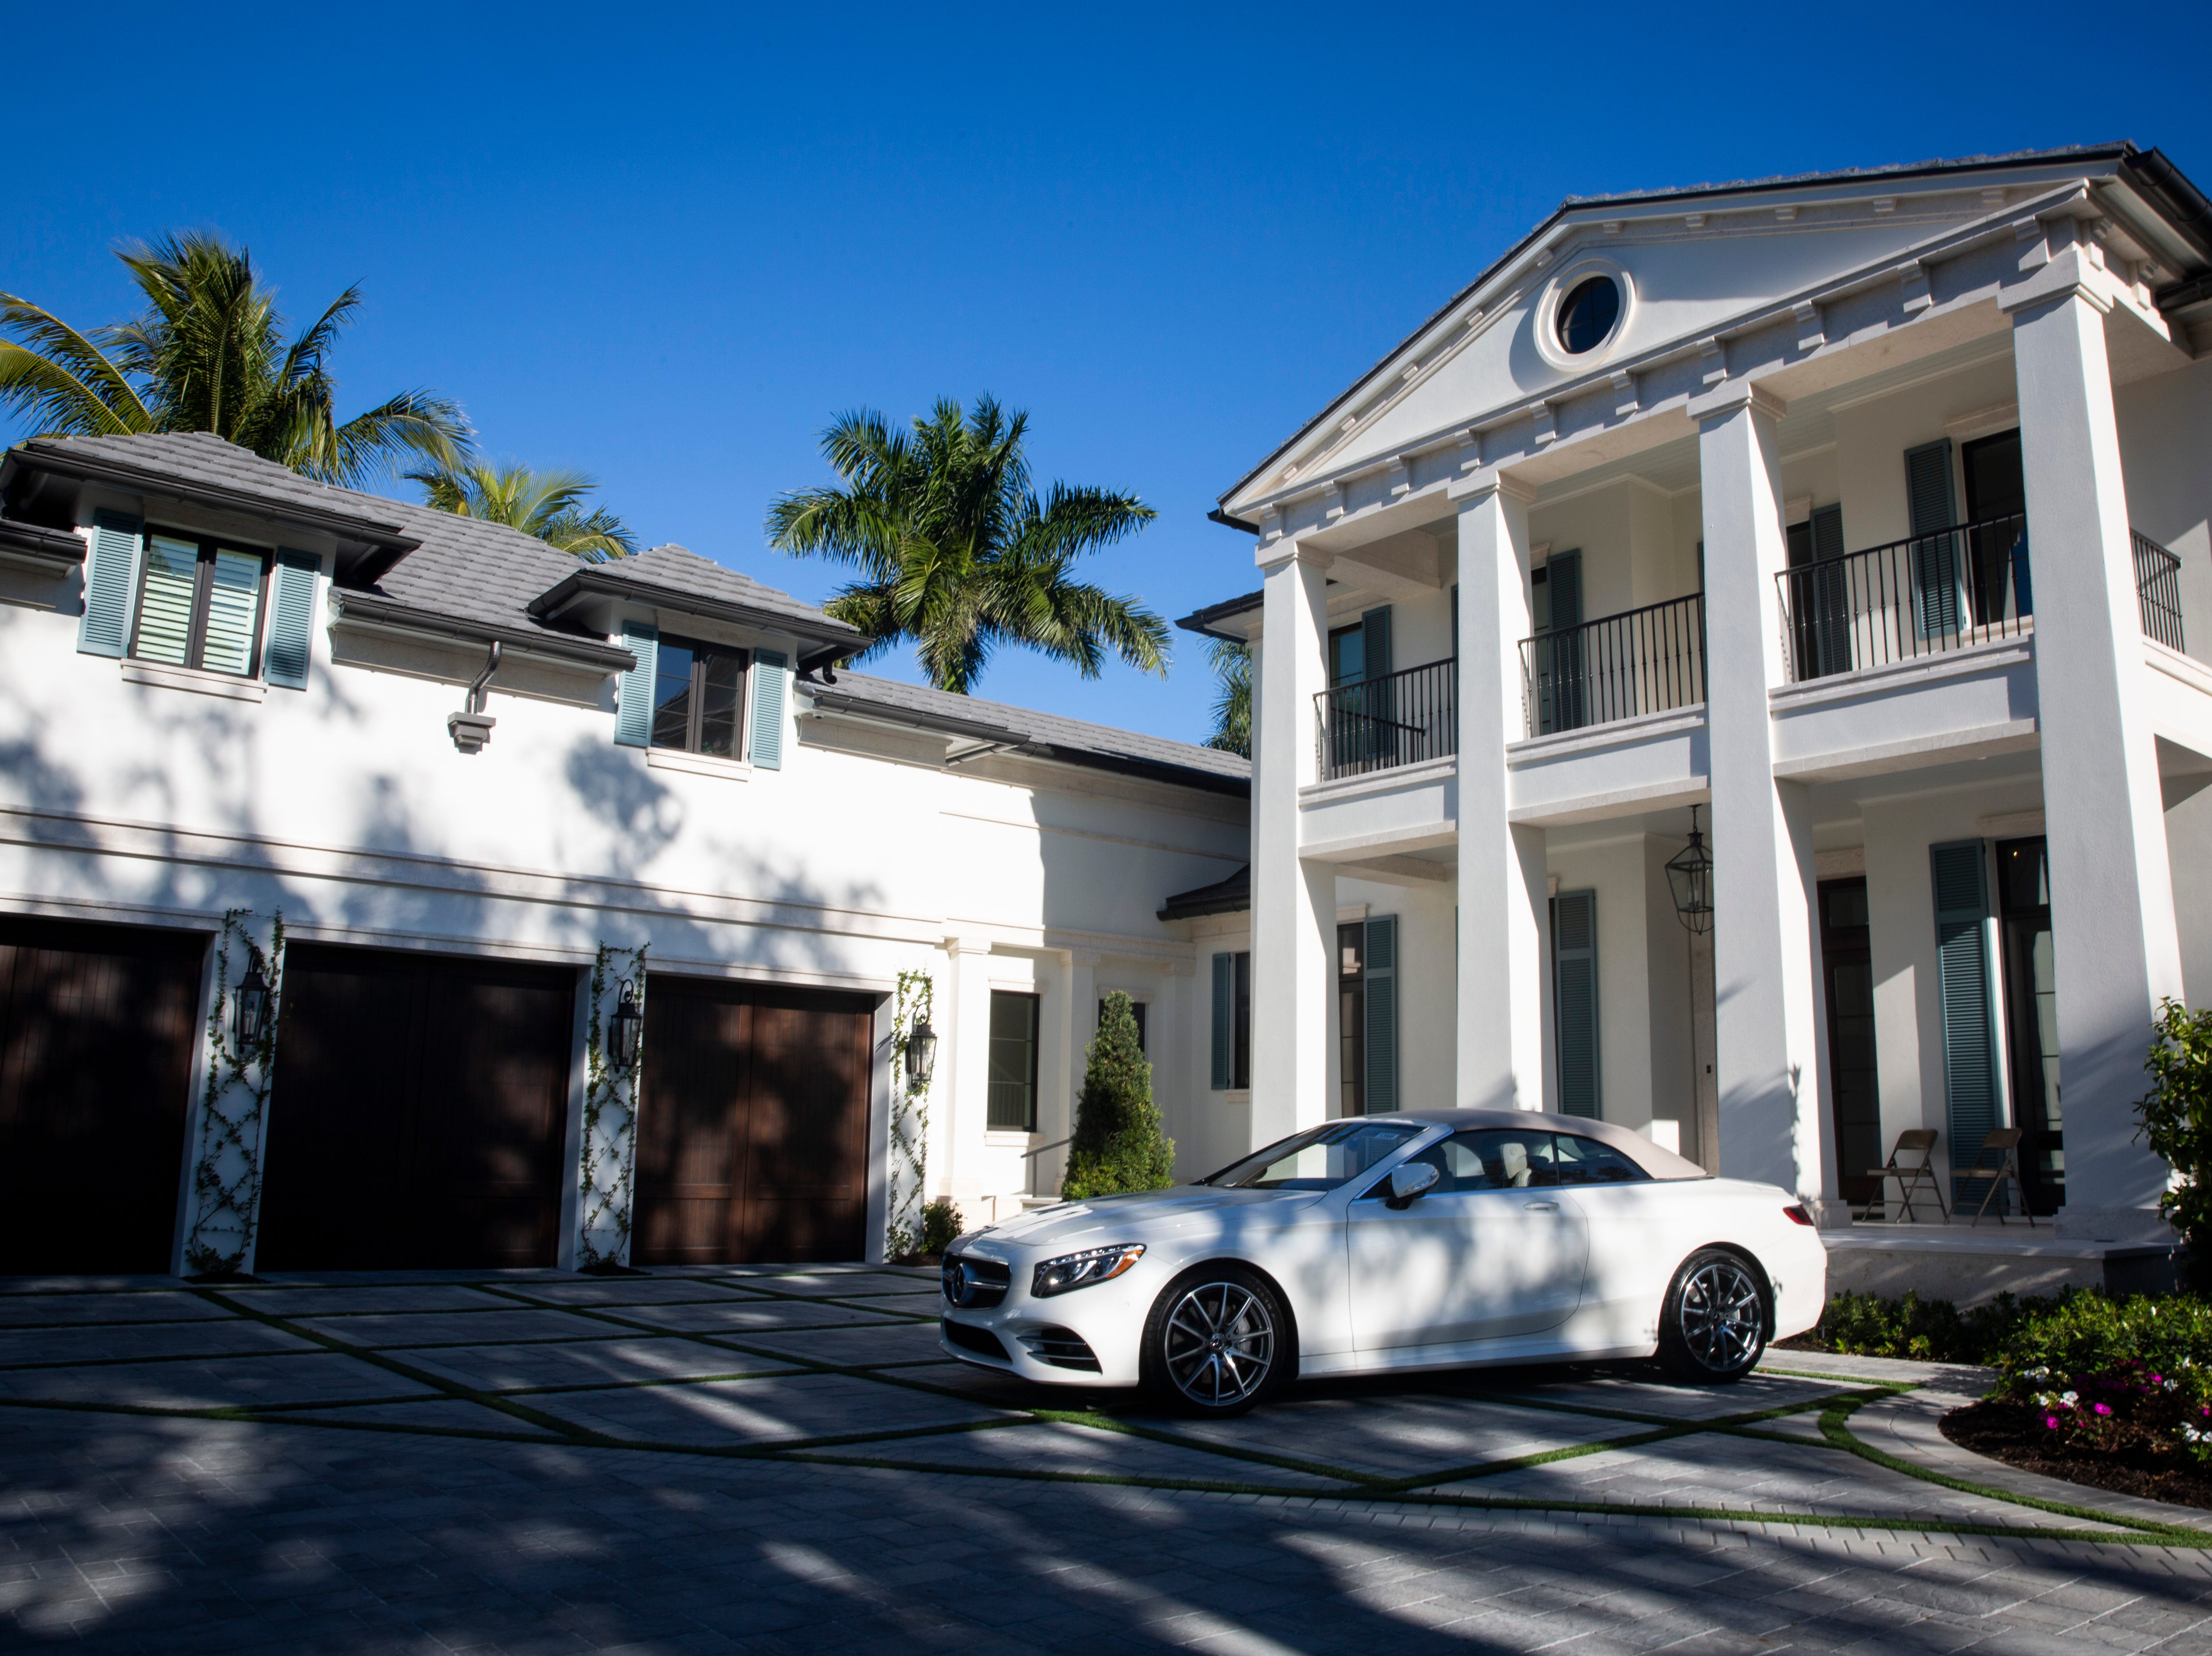 A new Mercedes-Benz is parked outside of a home on Green Dolphin Drive in Port Royal during the 7th annual Kitchen Tour, hosted by the Naples Woman's Club on Wednesday, January 16, 2019. Luxury cars available for sale were parked outside of three of the homes on the tour.